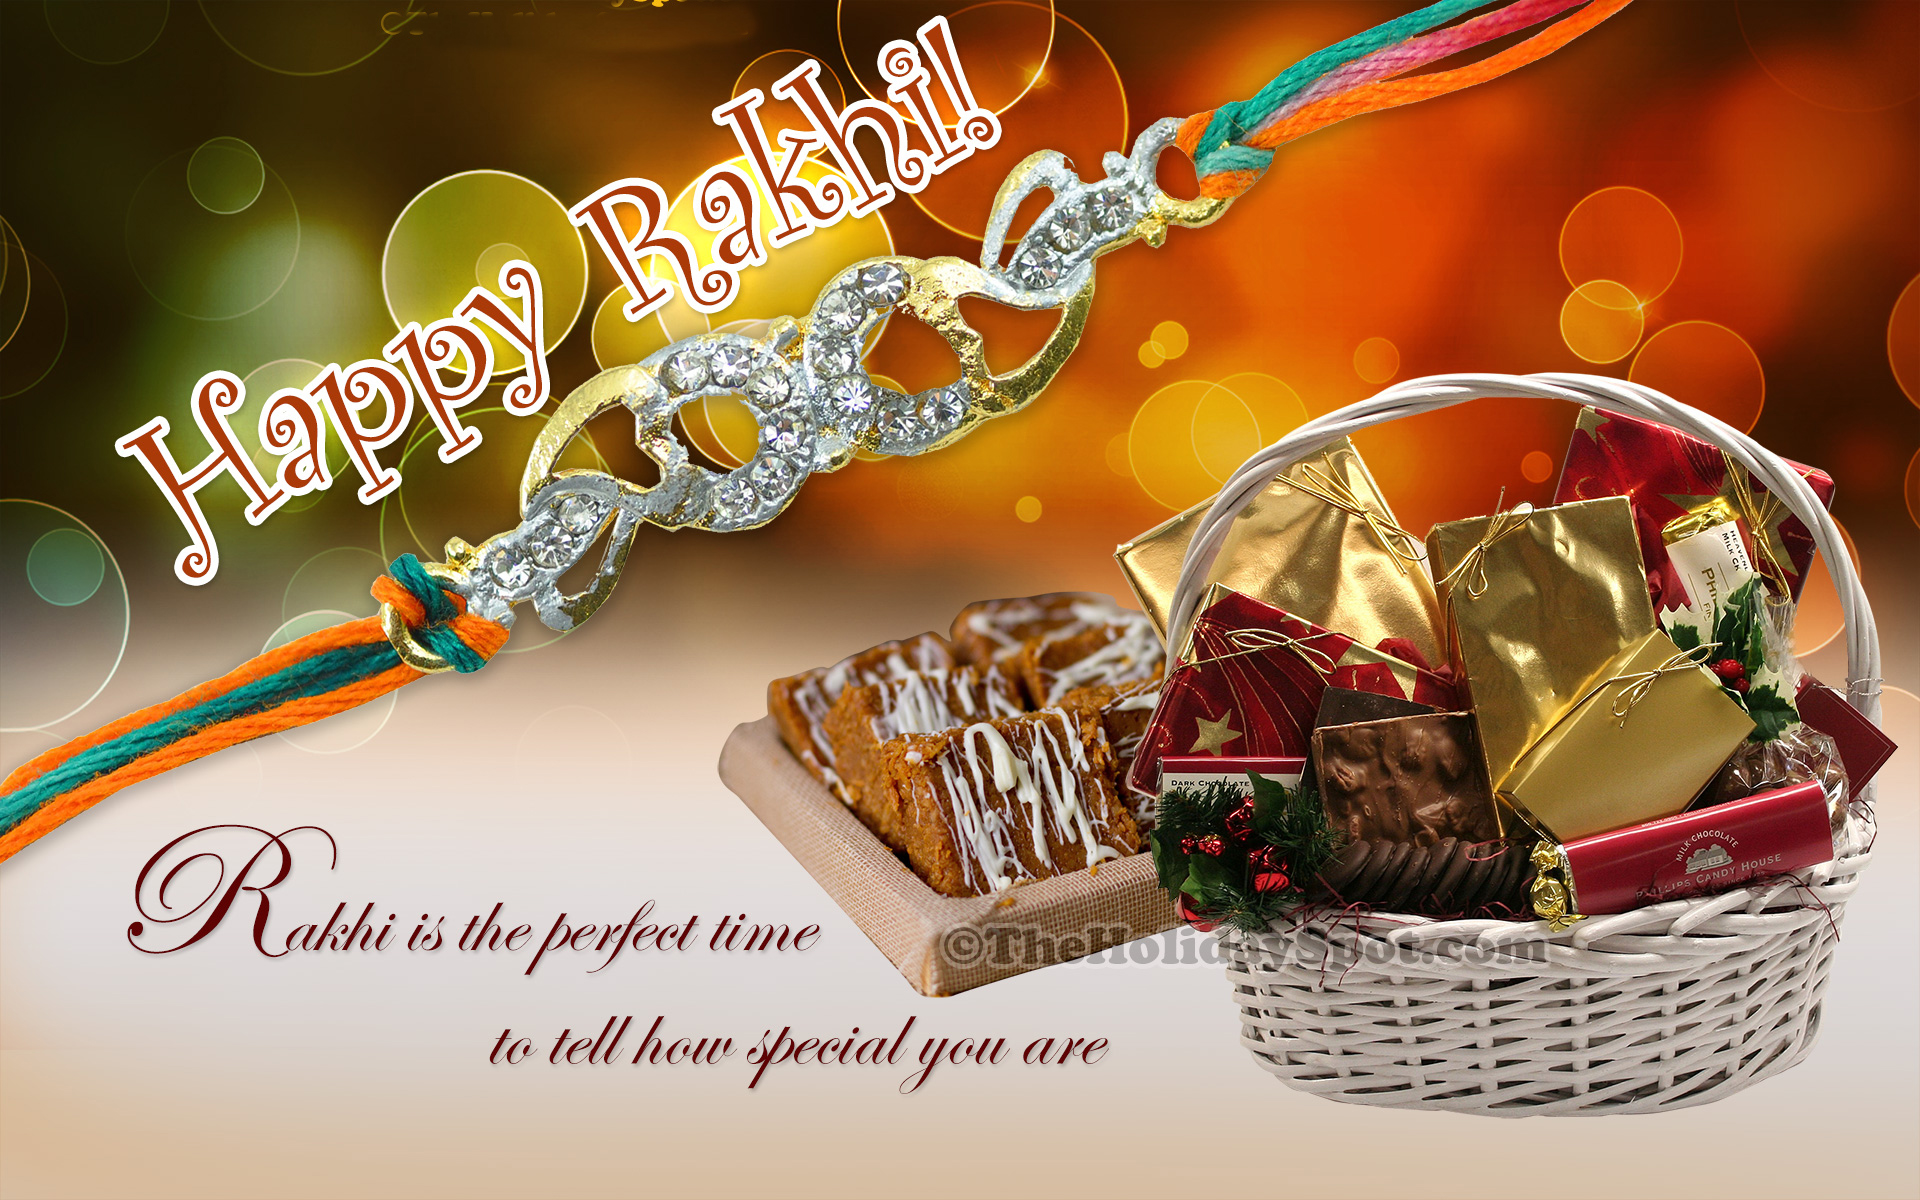 Happy Raksha Bandhan Greetings Cards Images Pictures Photos in English